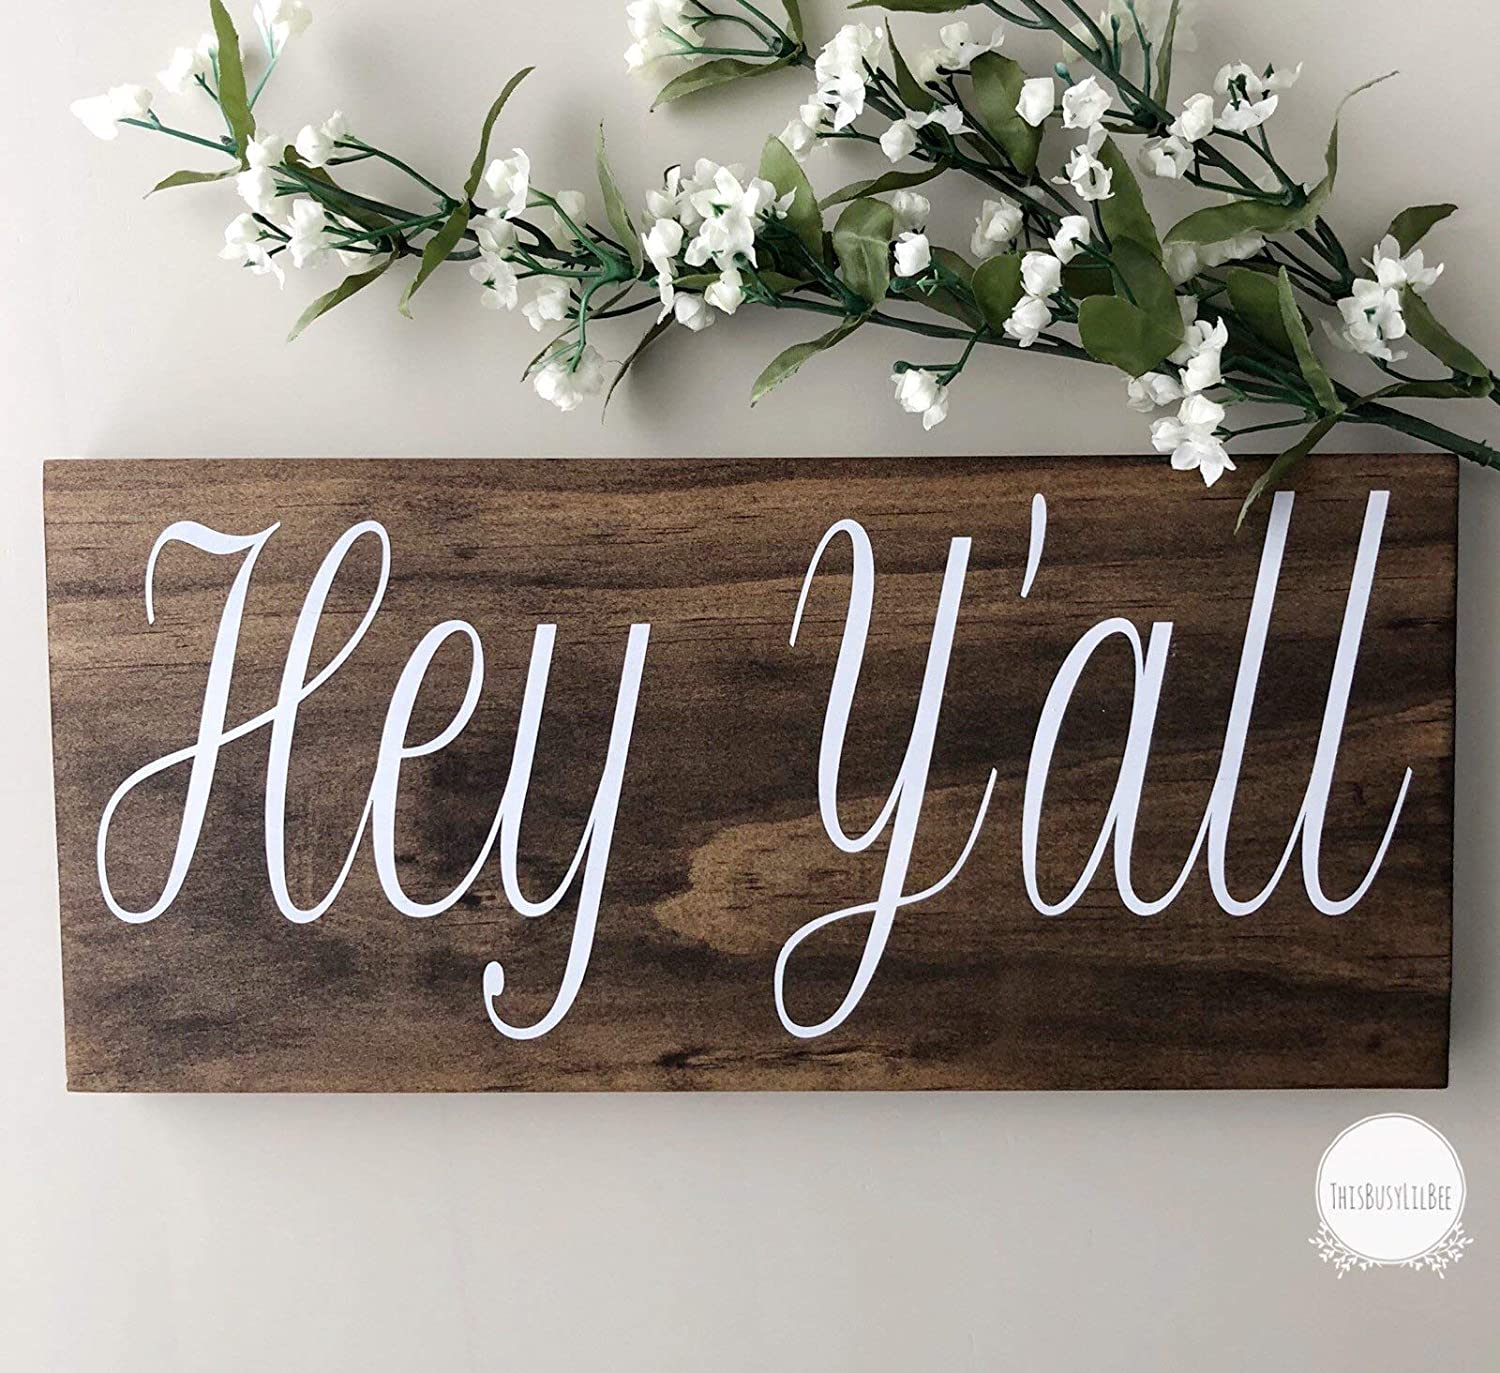 CELYCASY Hey, Hey Y'all, Hey Y'all Sign, Welcome Sign, Home Sign, Southern Decor, Southern Sayings, Welcome Sign, Mantle Decor, Shelf Sitter